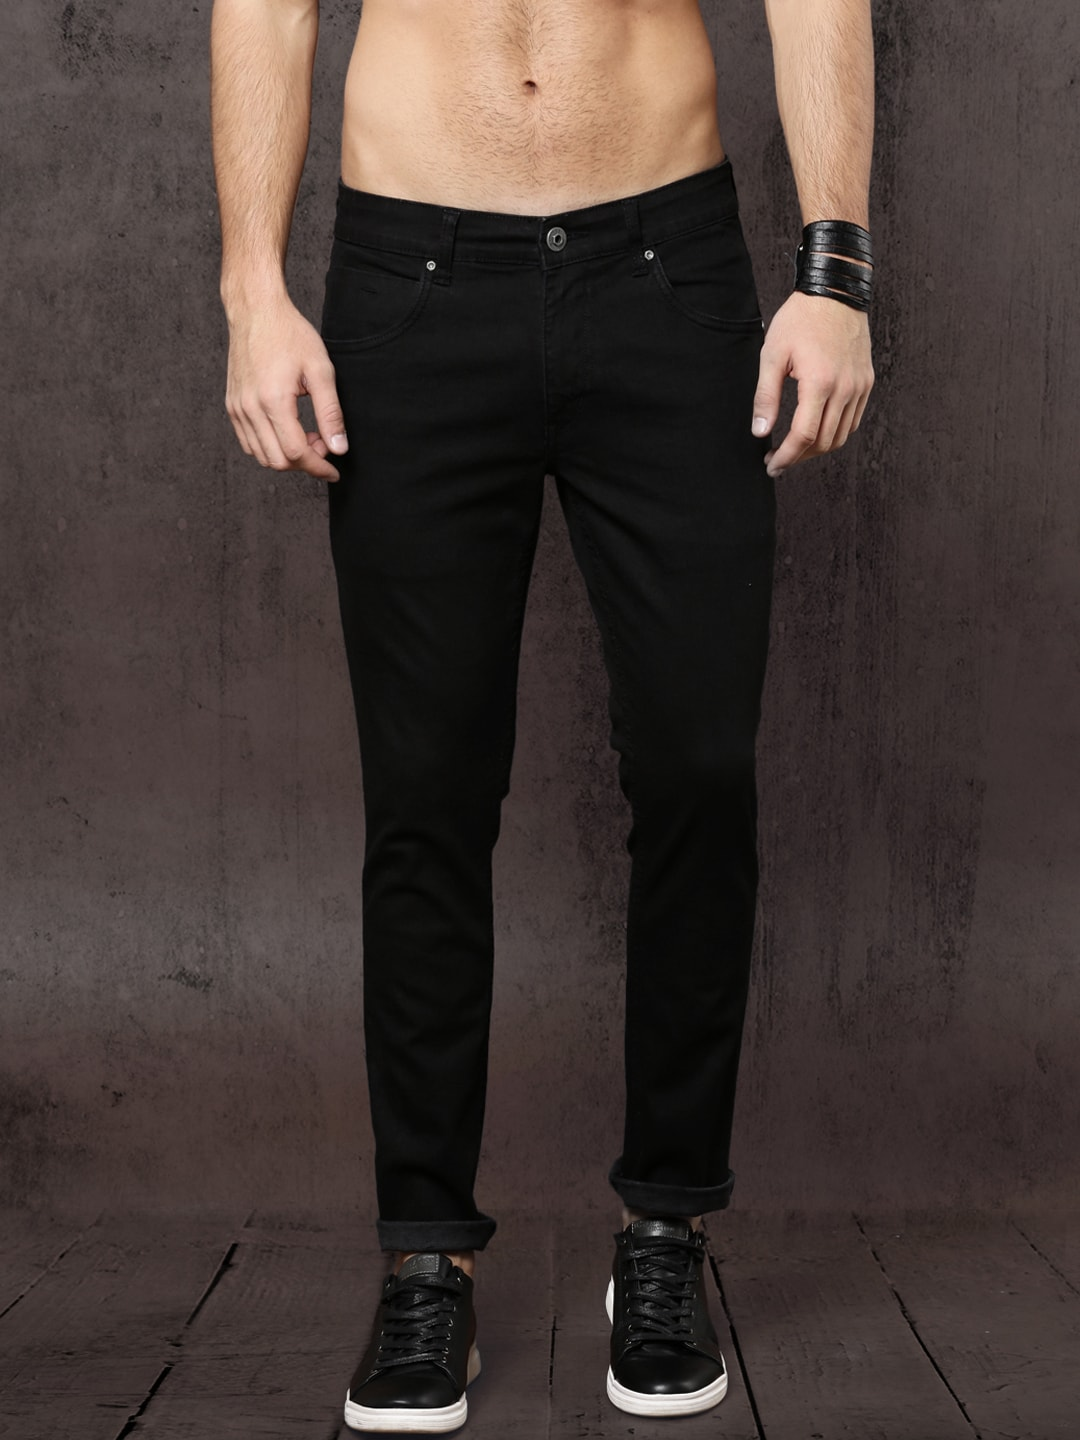 e2ca8d36106 Men Jeans - Buy Jeans for Men in India at best prices